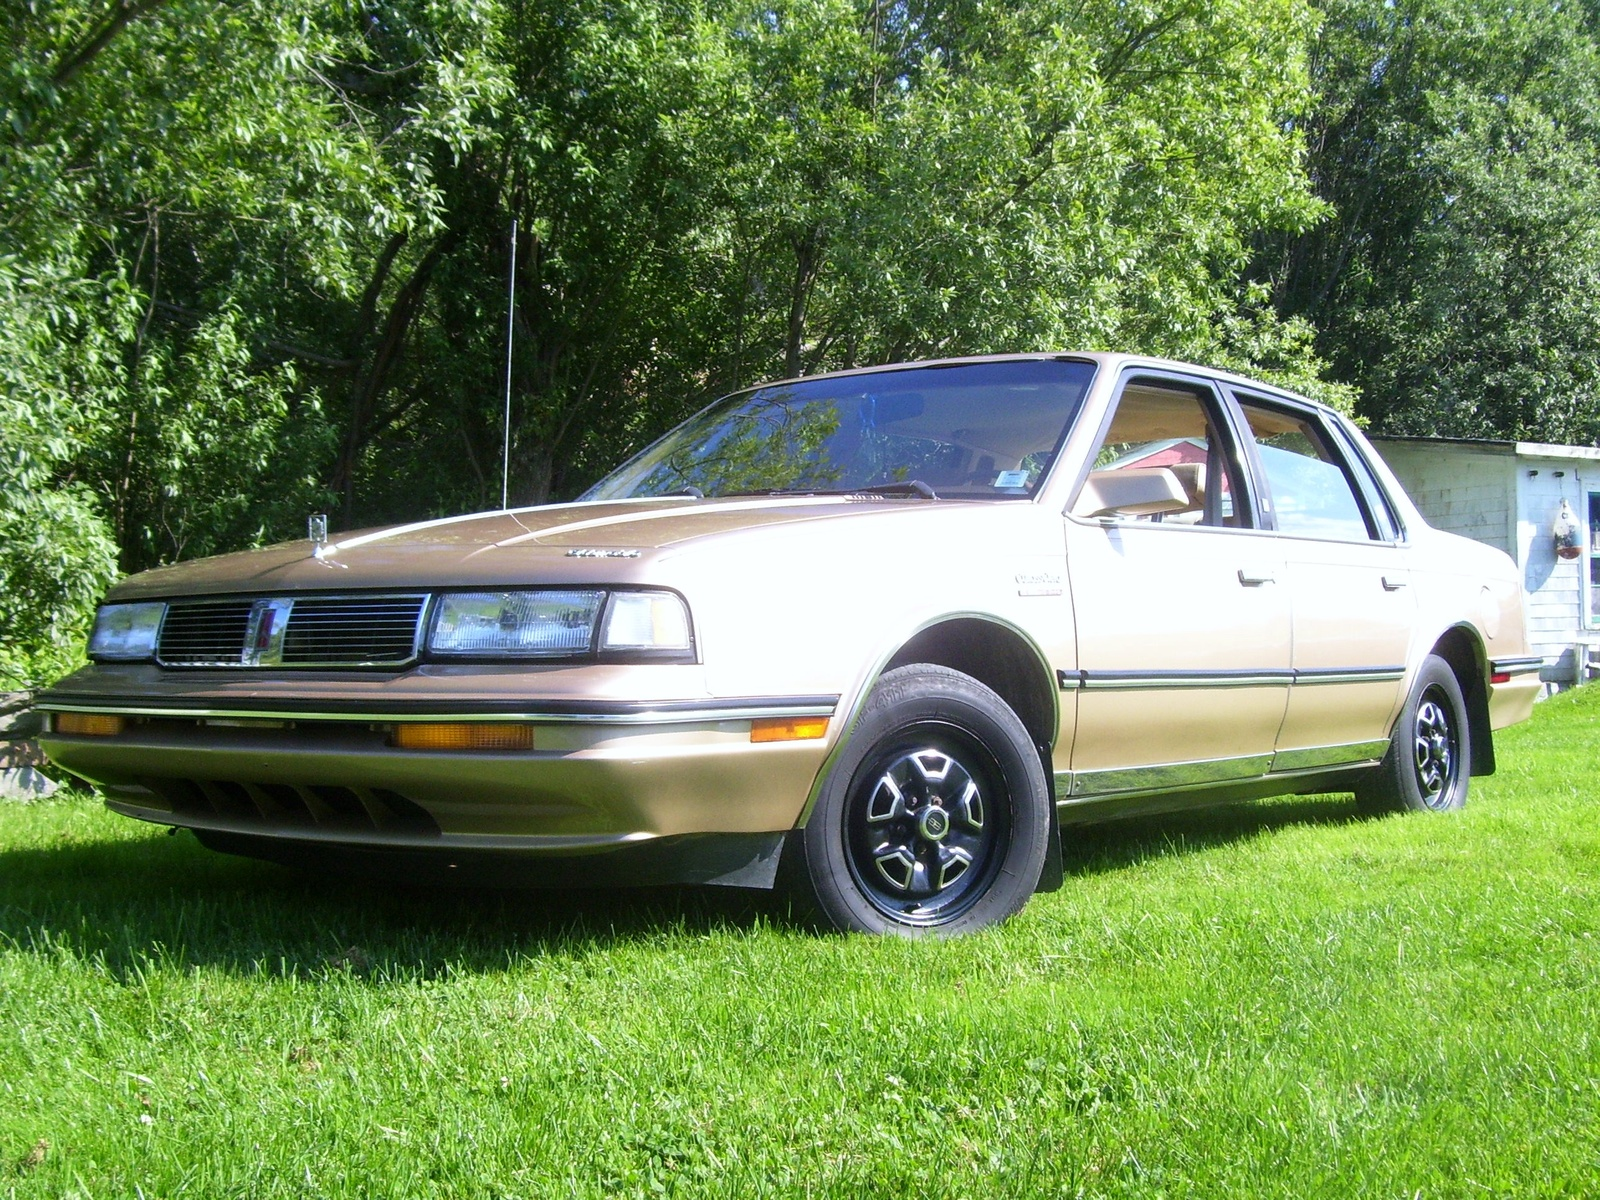 1990 Oldsmobile Cutlass Ciera picture